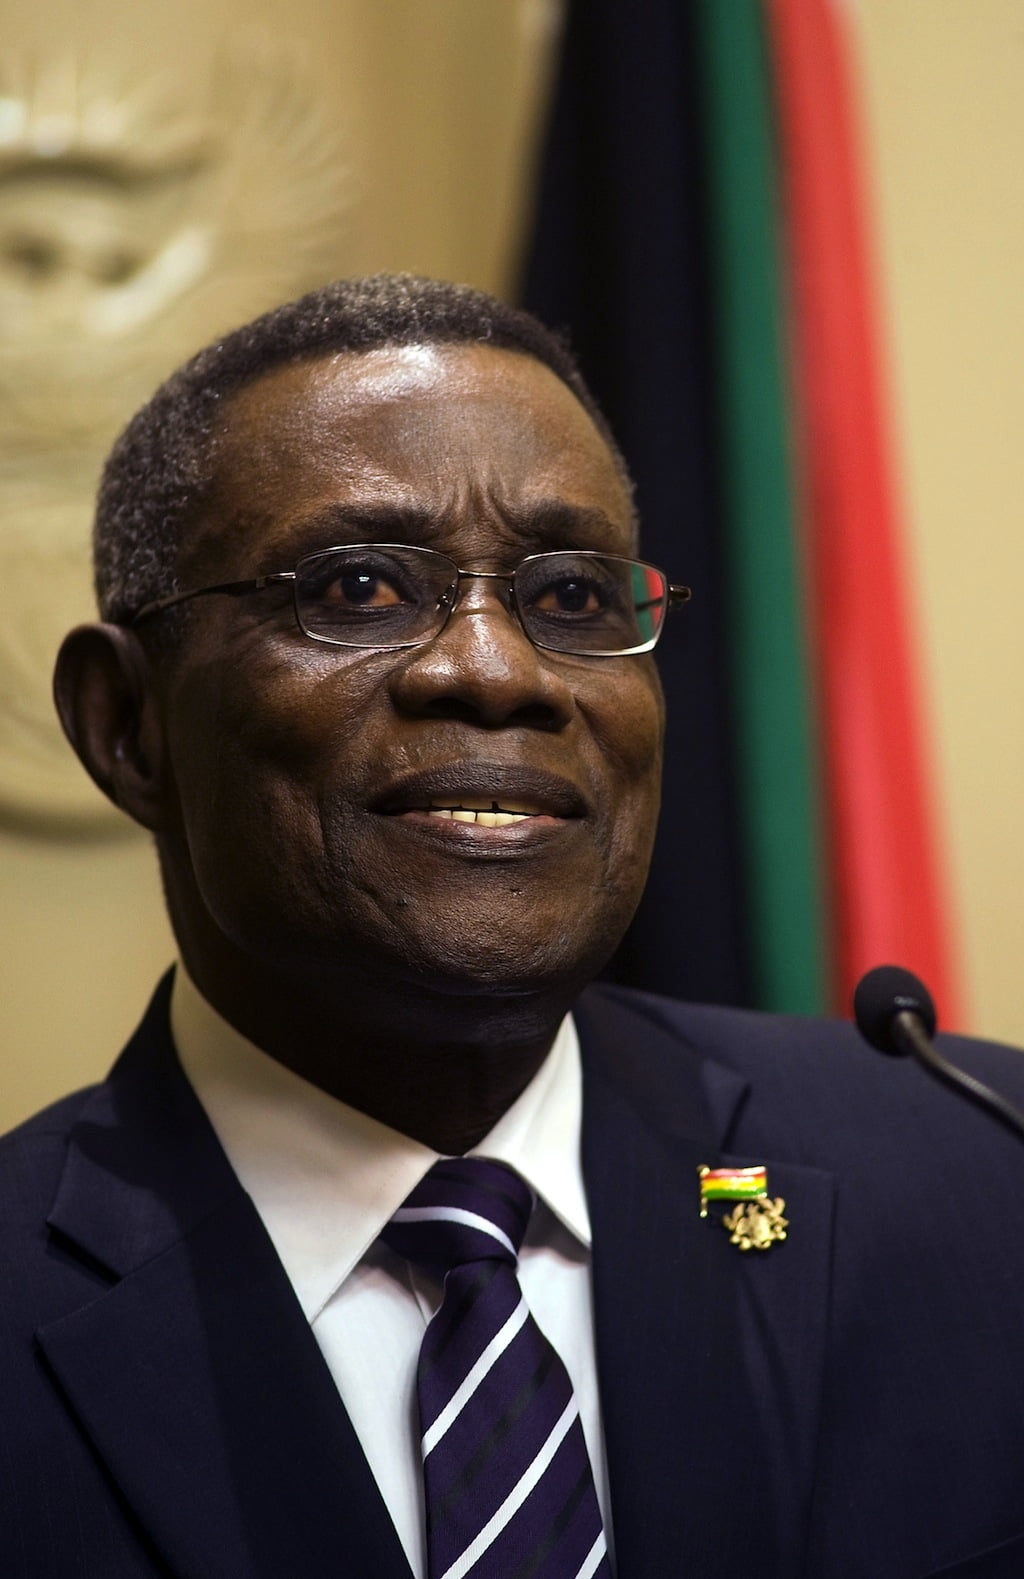 Throwback video of President Atta-Mills speaking against the legalization of homosexuality in Ghana 2